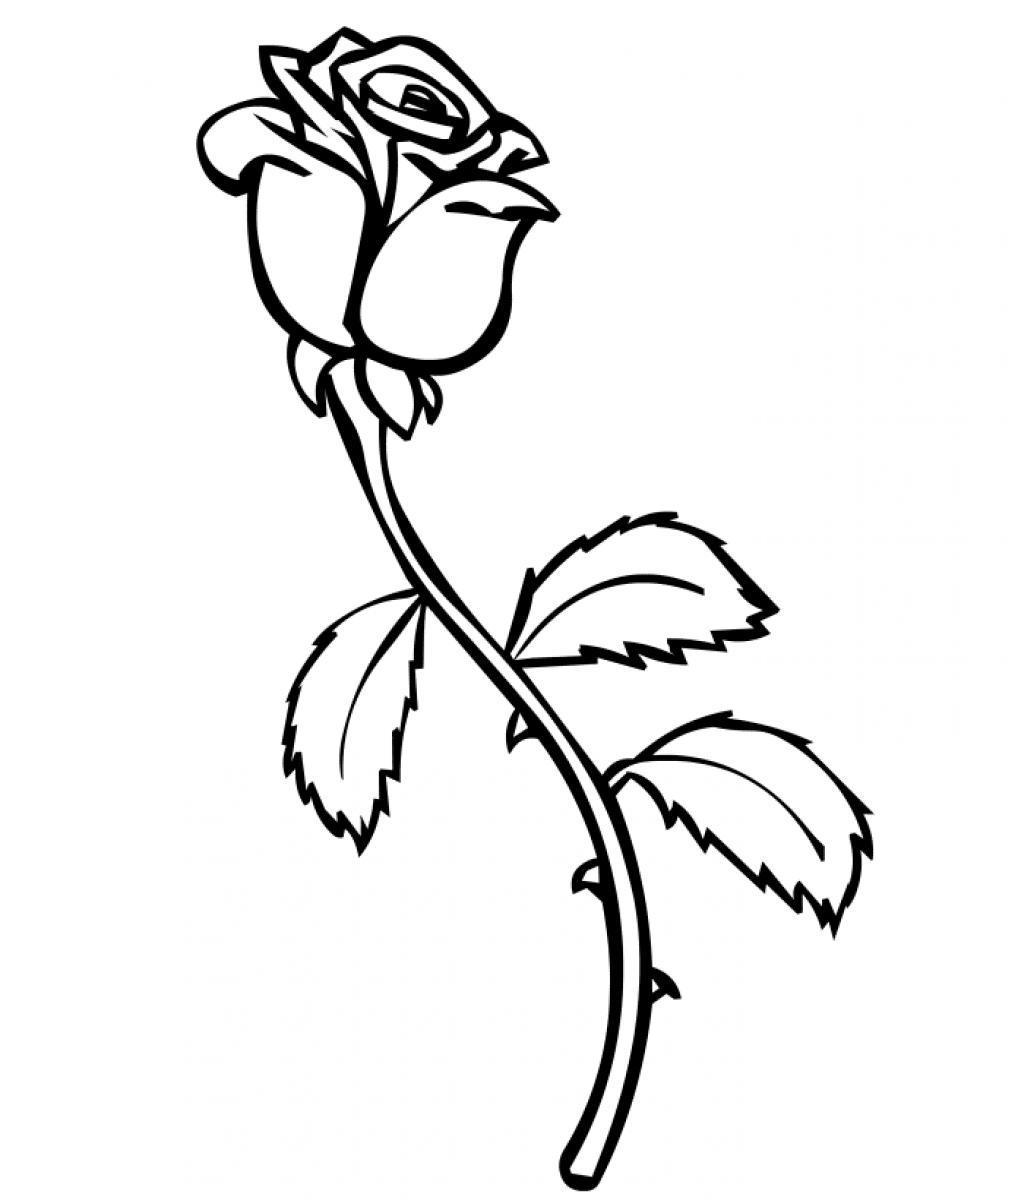 rose coloring pages for kids - photo#2